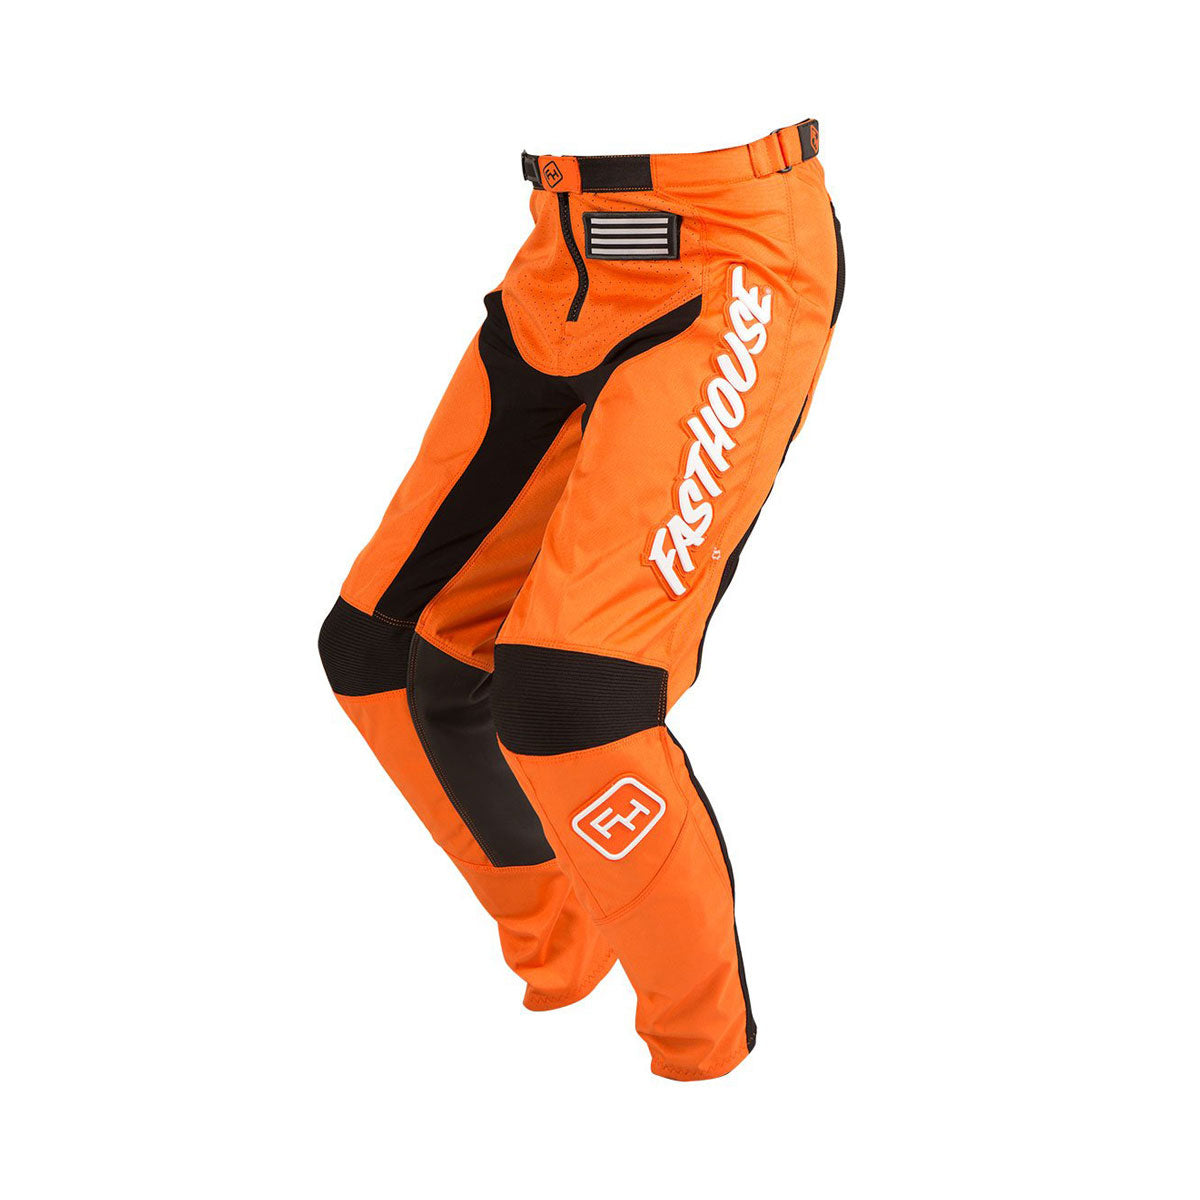 Grindhouse Youth Pant - Orange